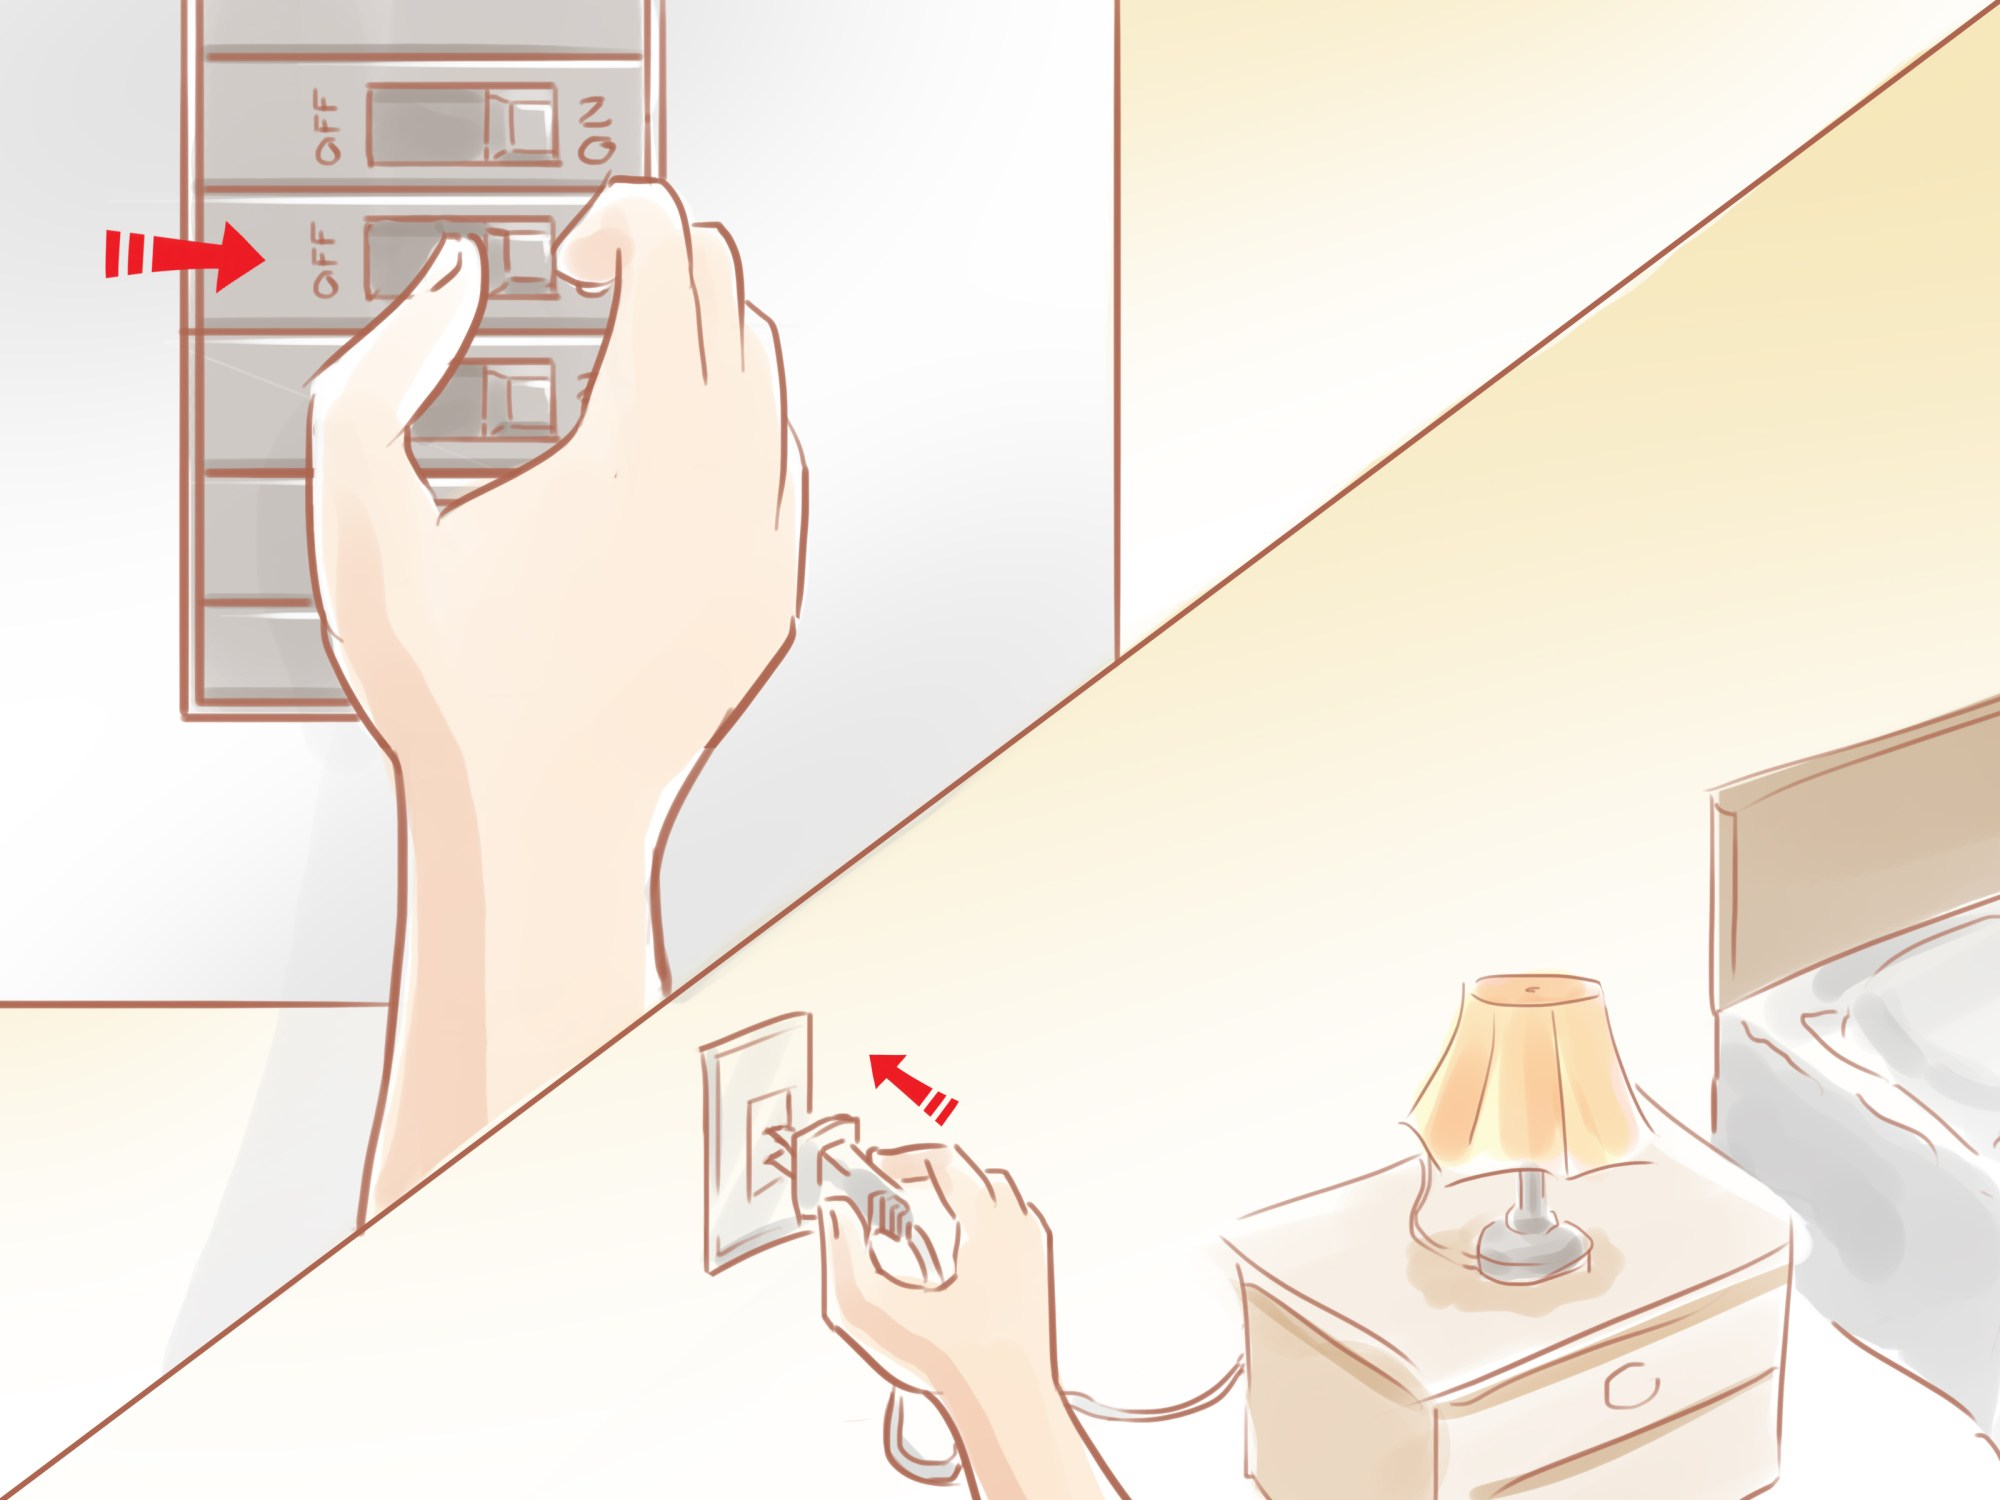 hight resolution of how to find the fuse box or circuit breaker box